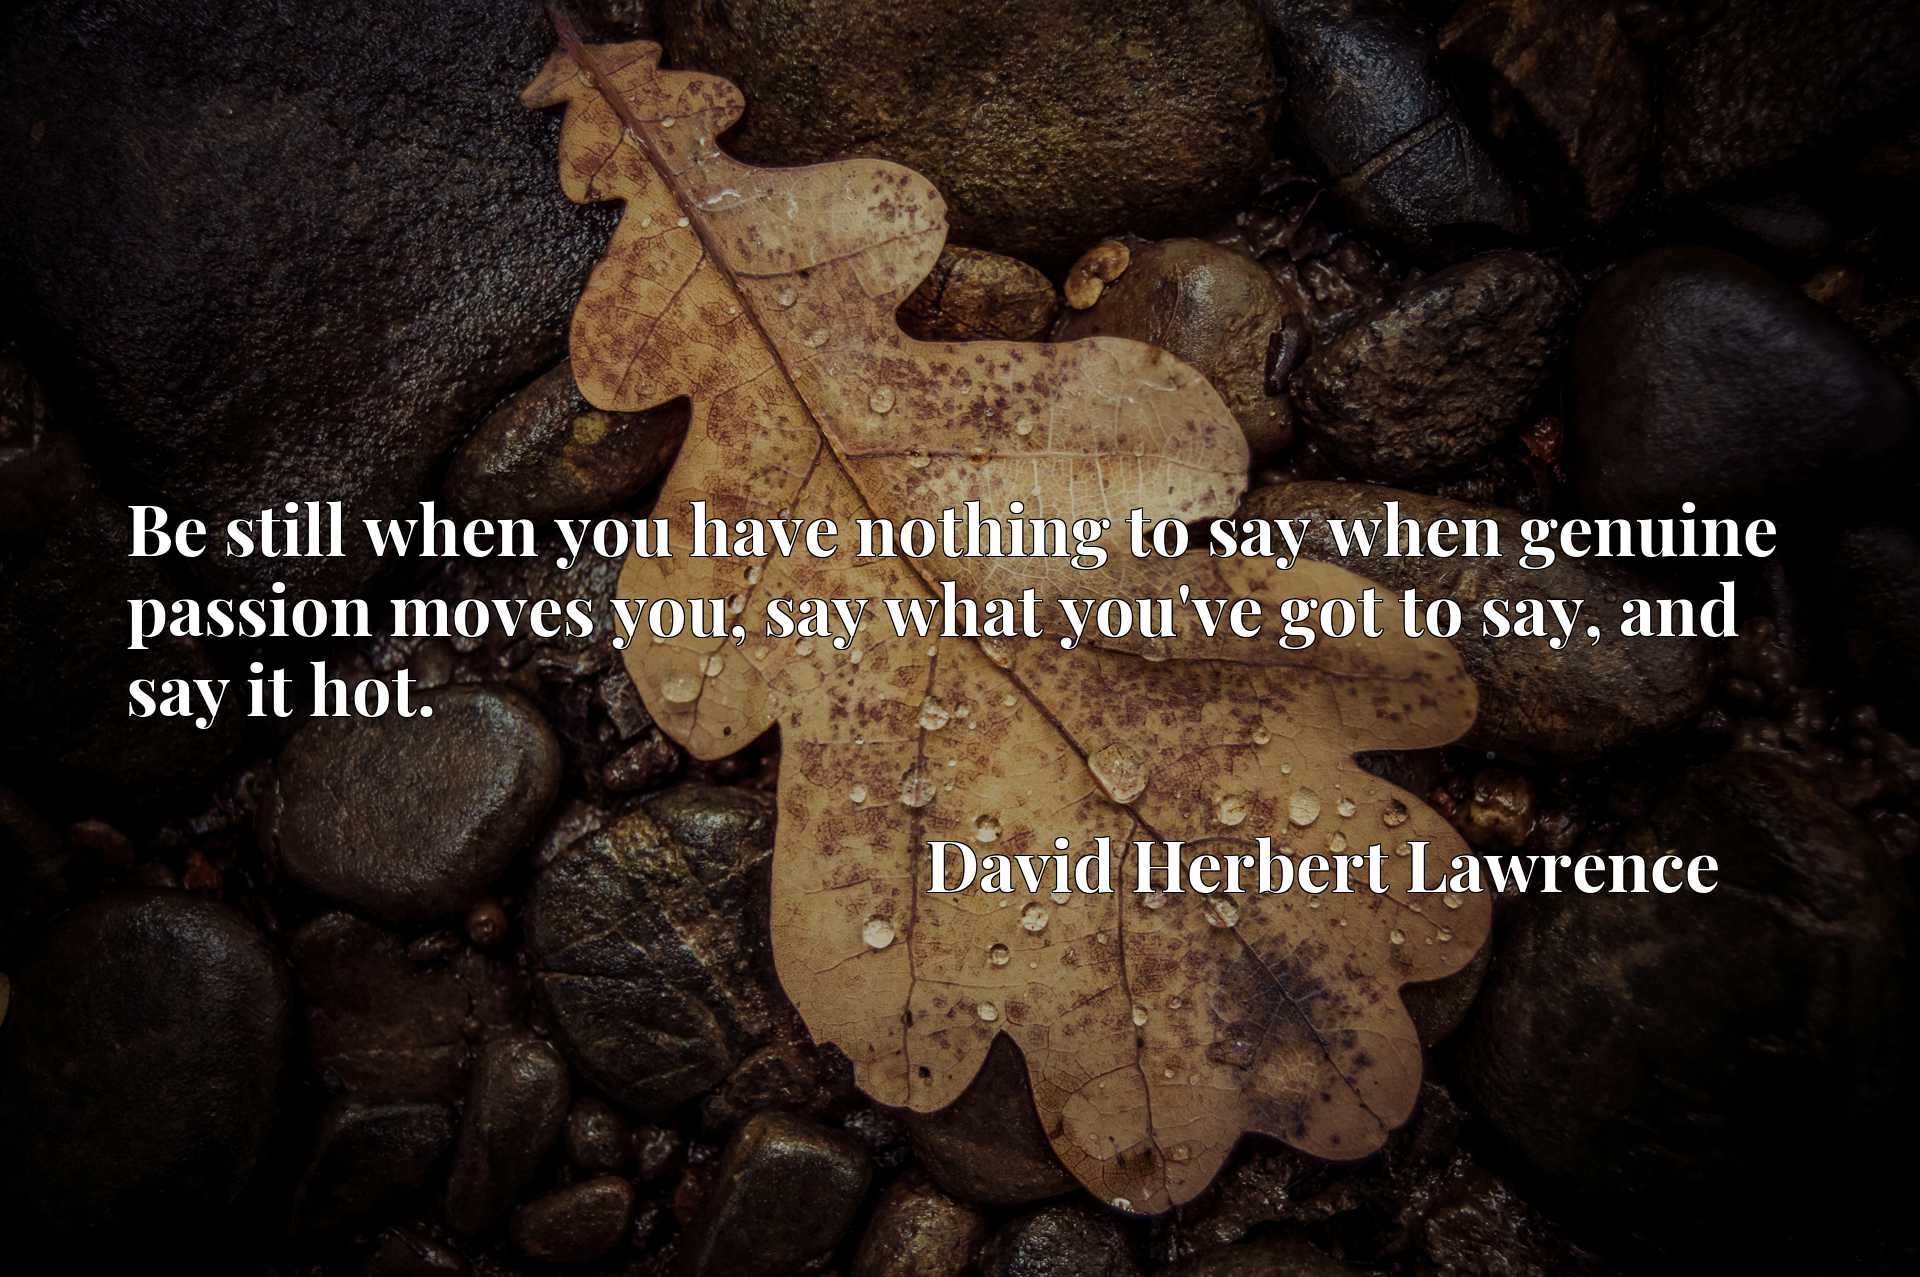 Be still when you have nothing to say when genuine passion moves you, say what you've got to say, and say it hot.